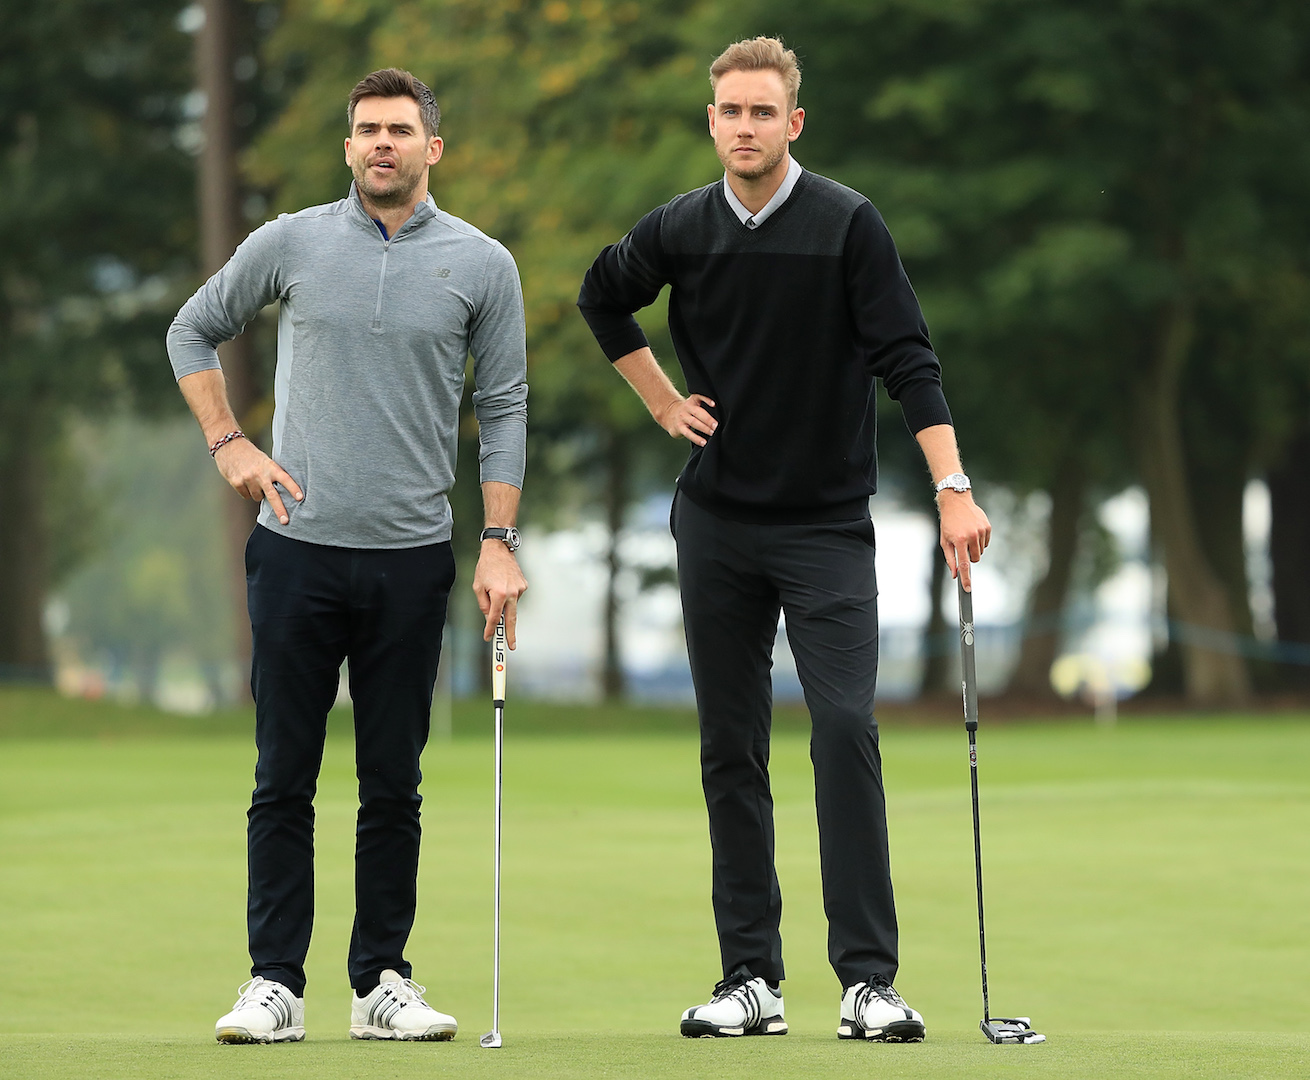 UK's tallest man almost takes out GolfPunk